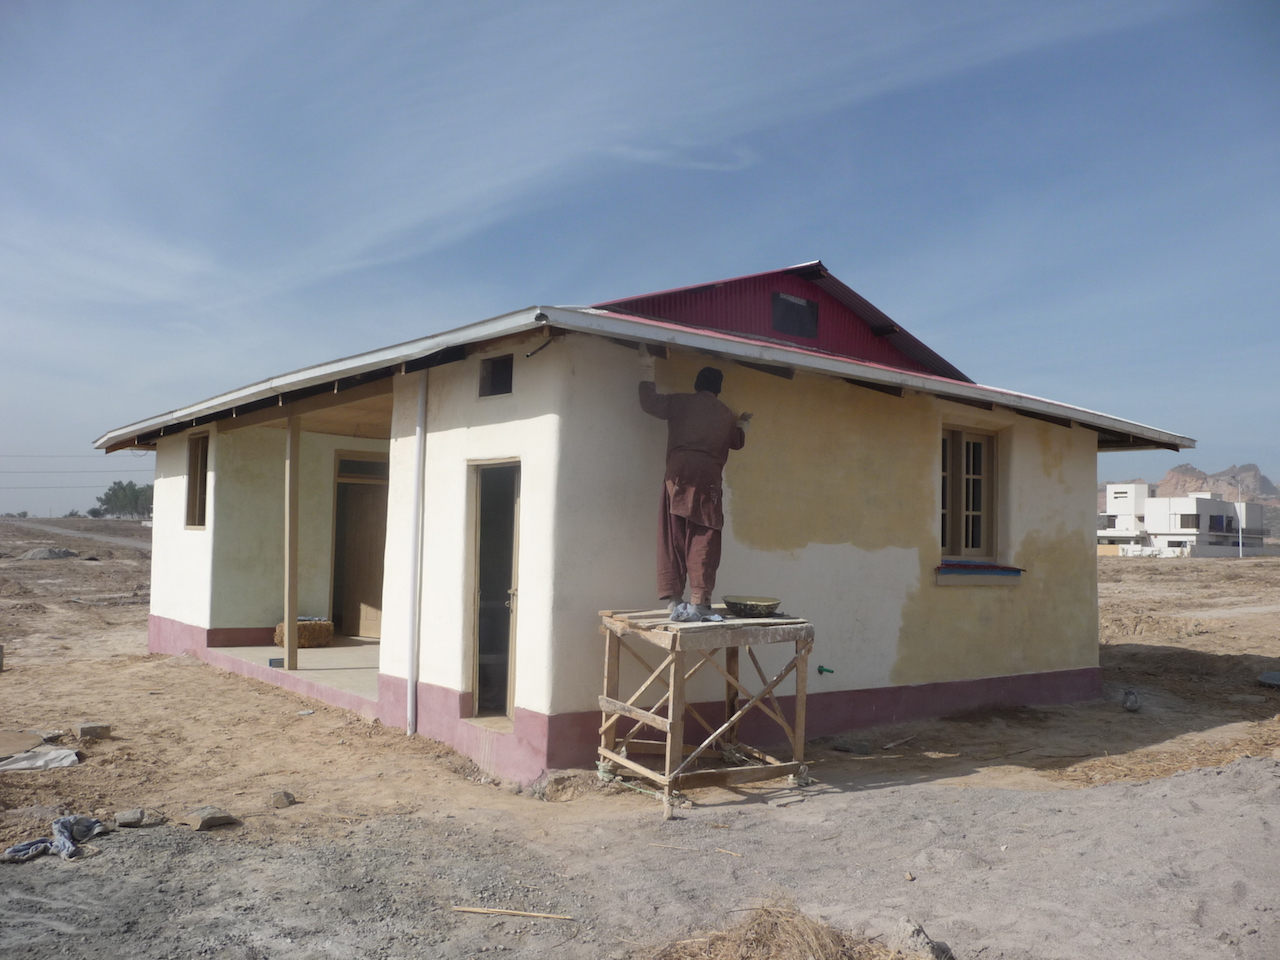 Update on Straw Bale Building in Pakistan